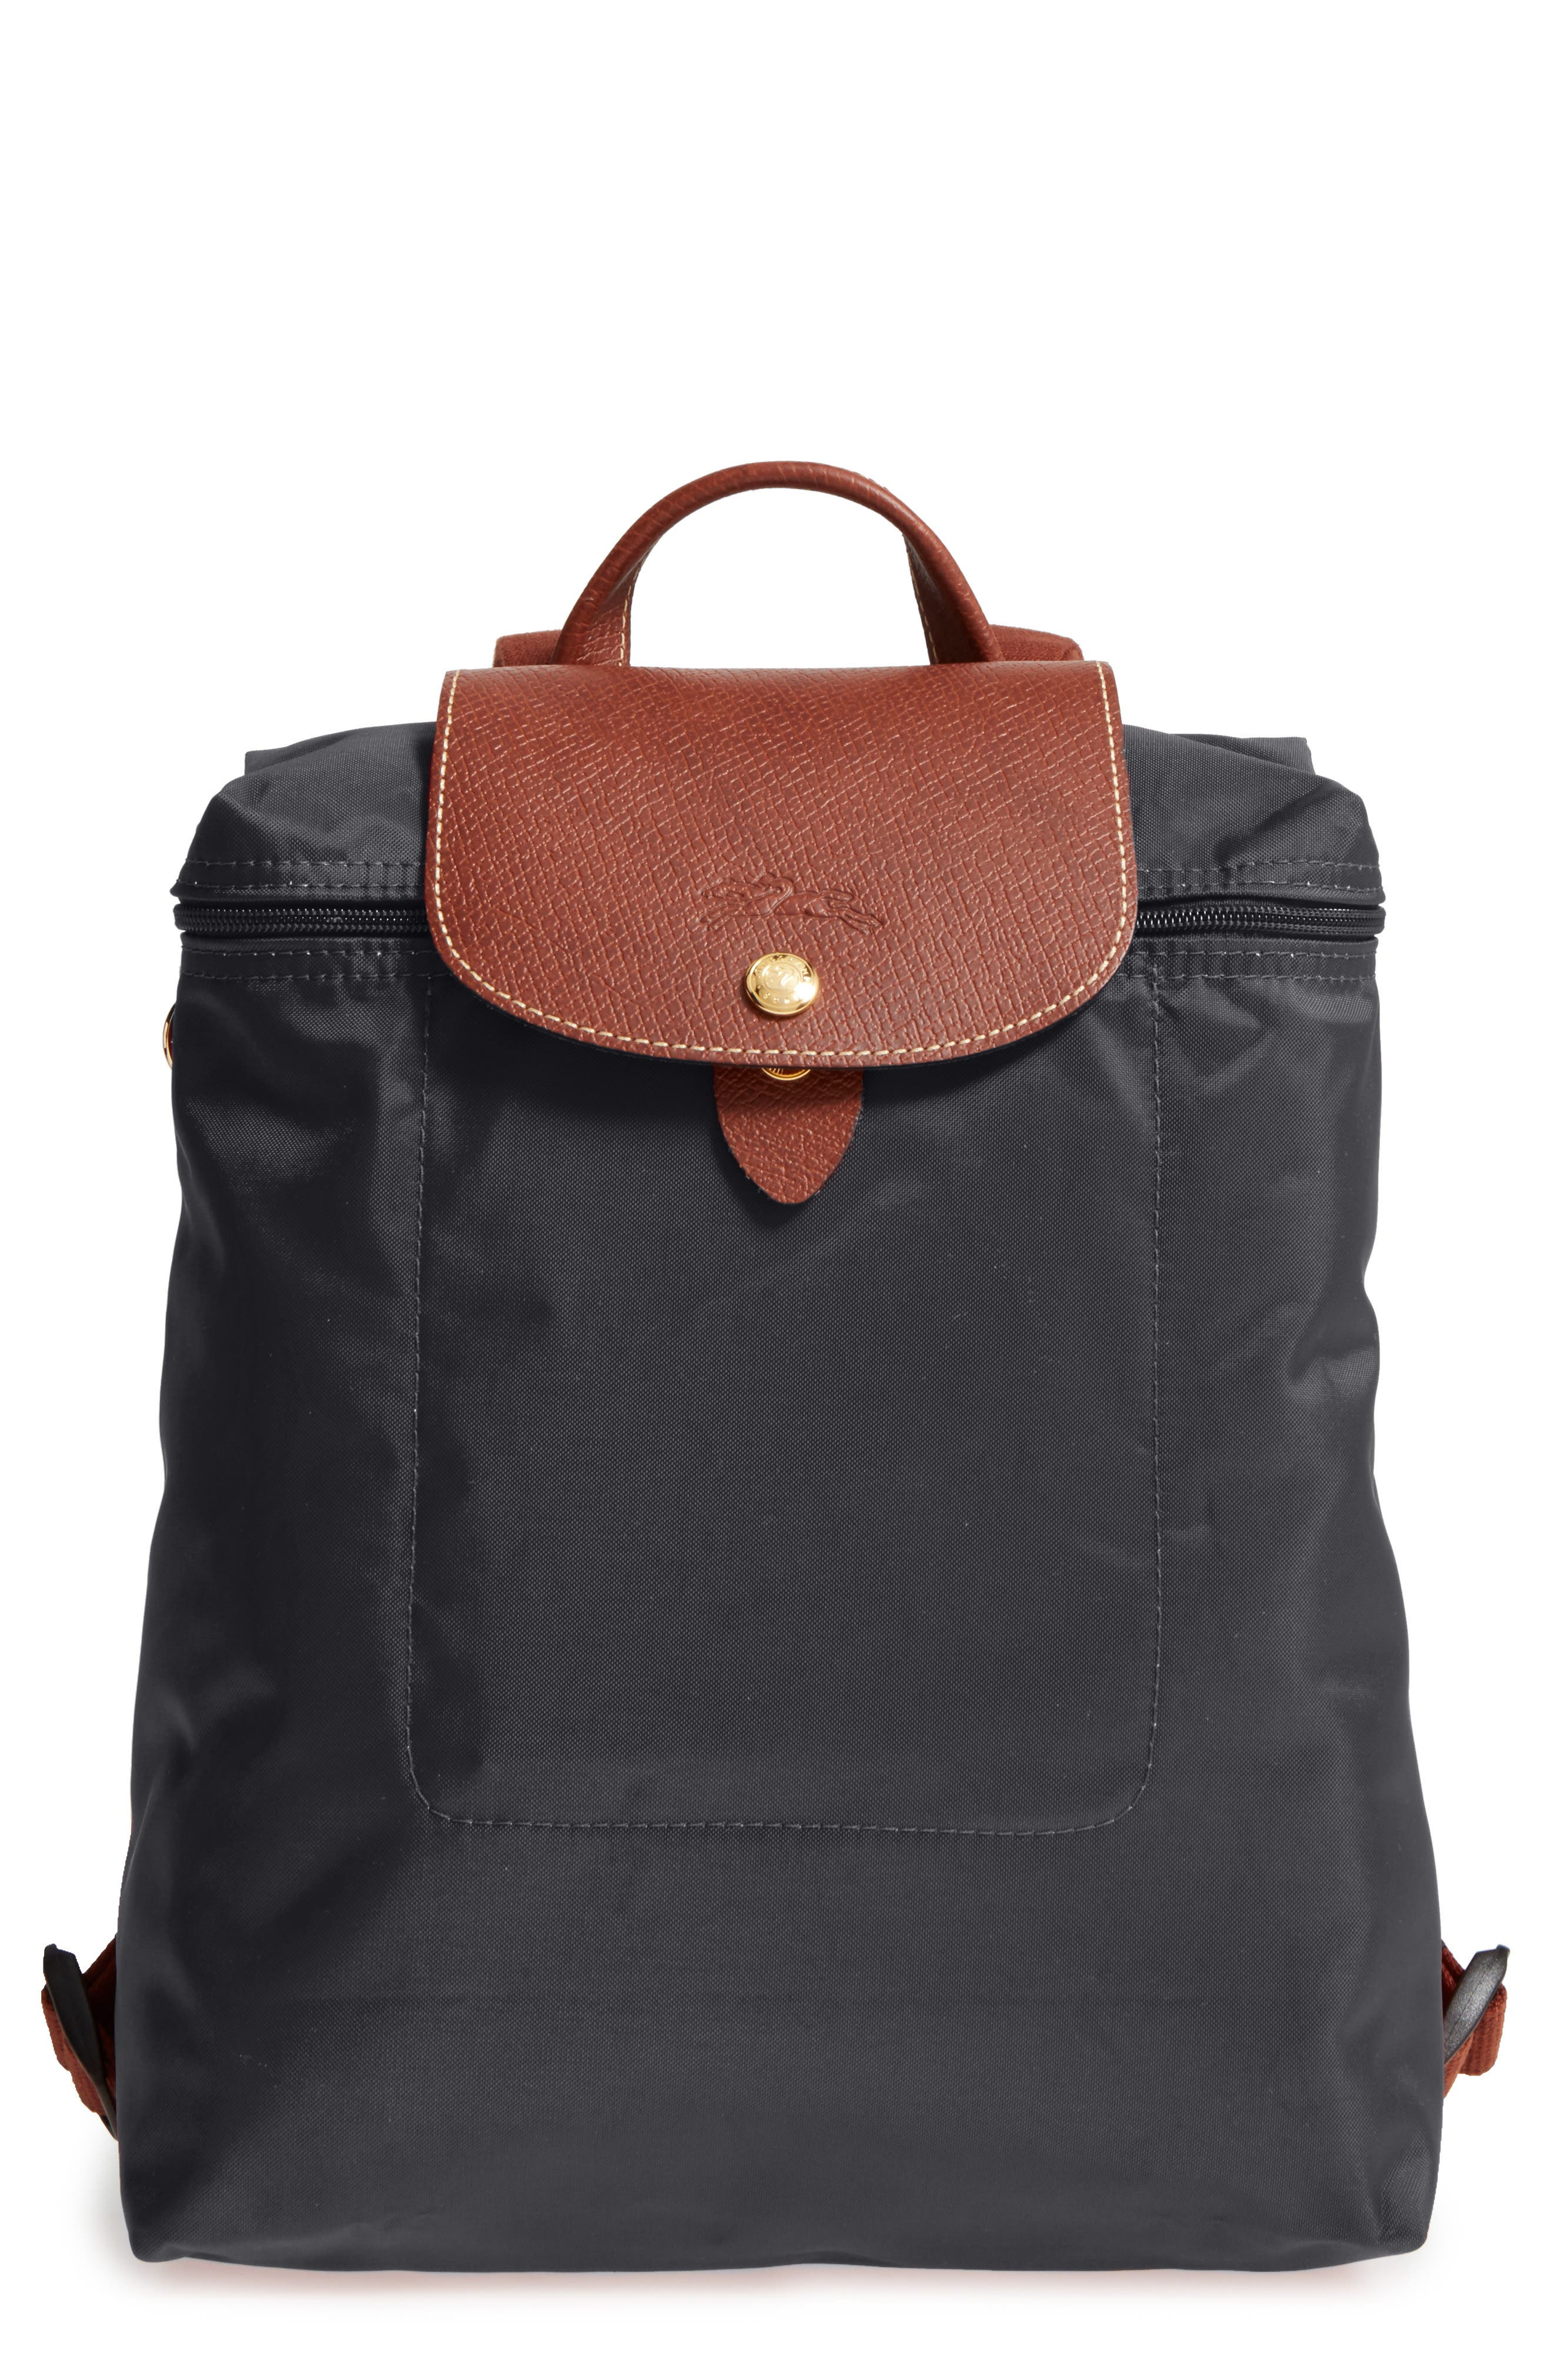 'Le Pliage' Backpack,                             Main thumbnail 1, color,                             GUNMETAL